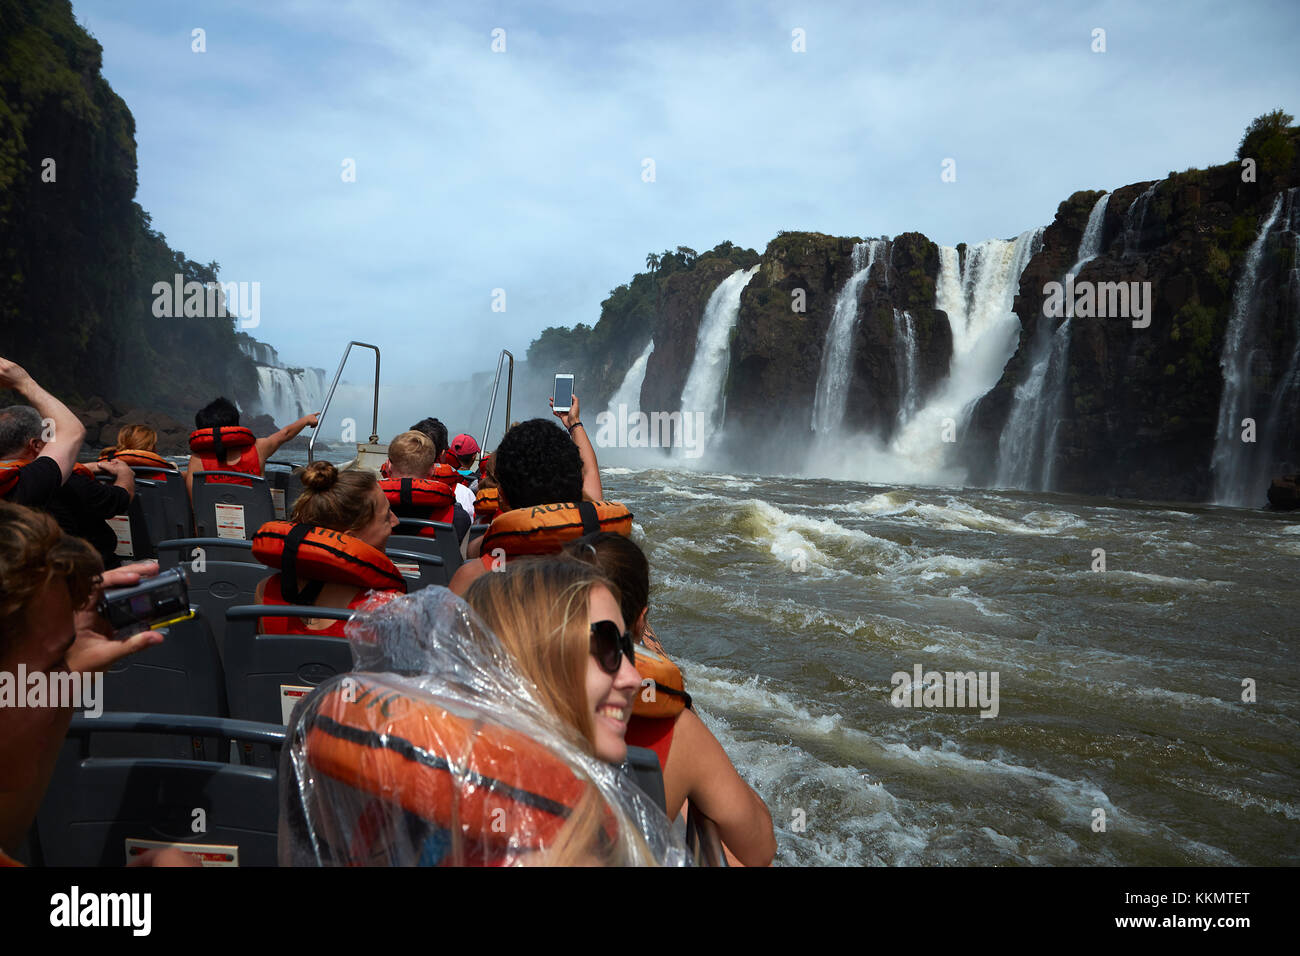 Tourists on boat that goes under Iguazu Falls, Argentina, South America - Stock Image